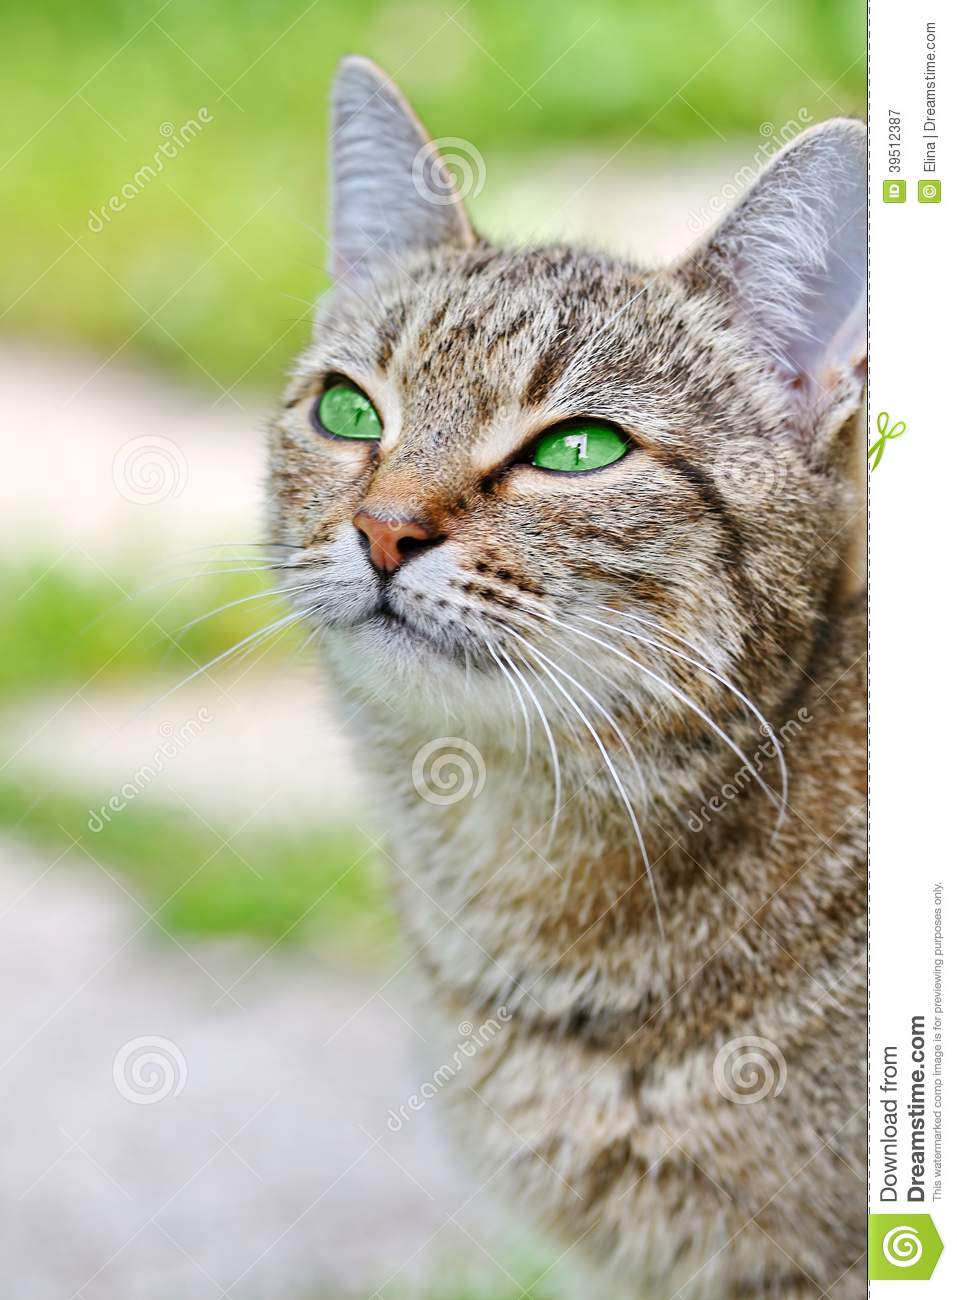 Beautiful Grey Waterproof Flooring Ideas For Living Room: Striped Cat With Green Eyes Stock Image